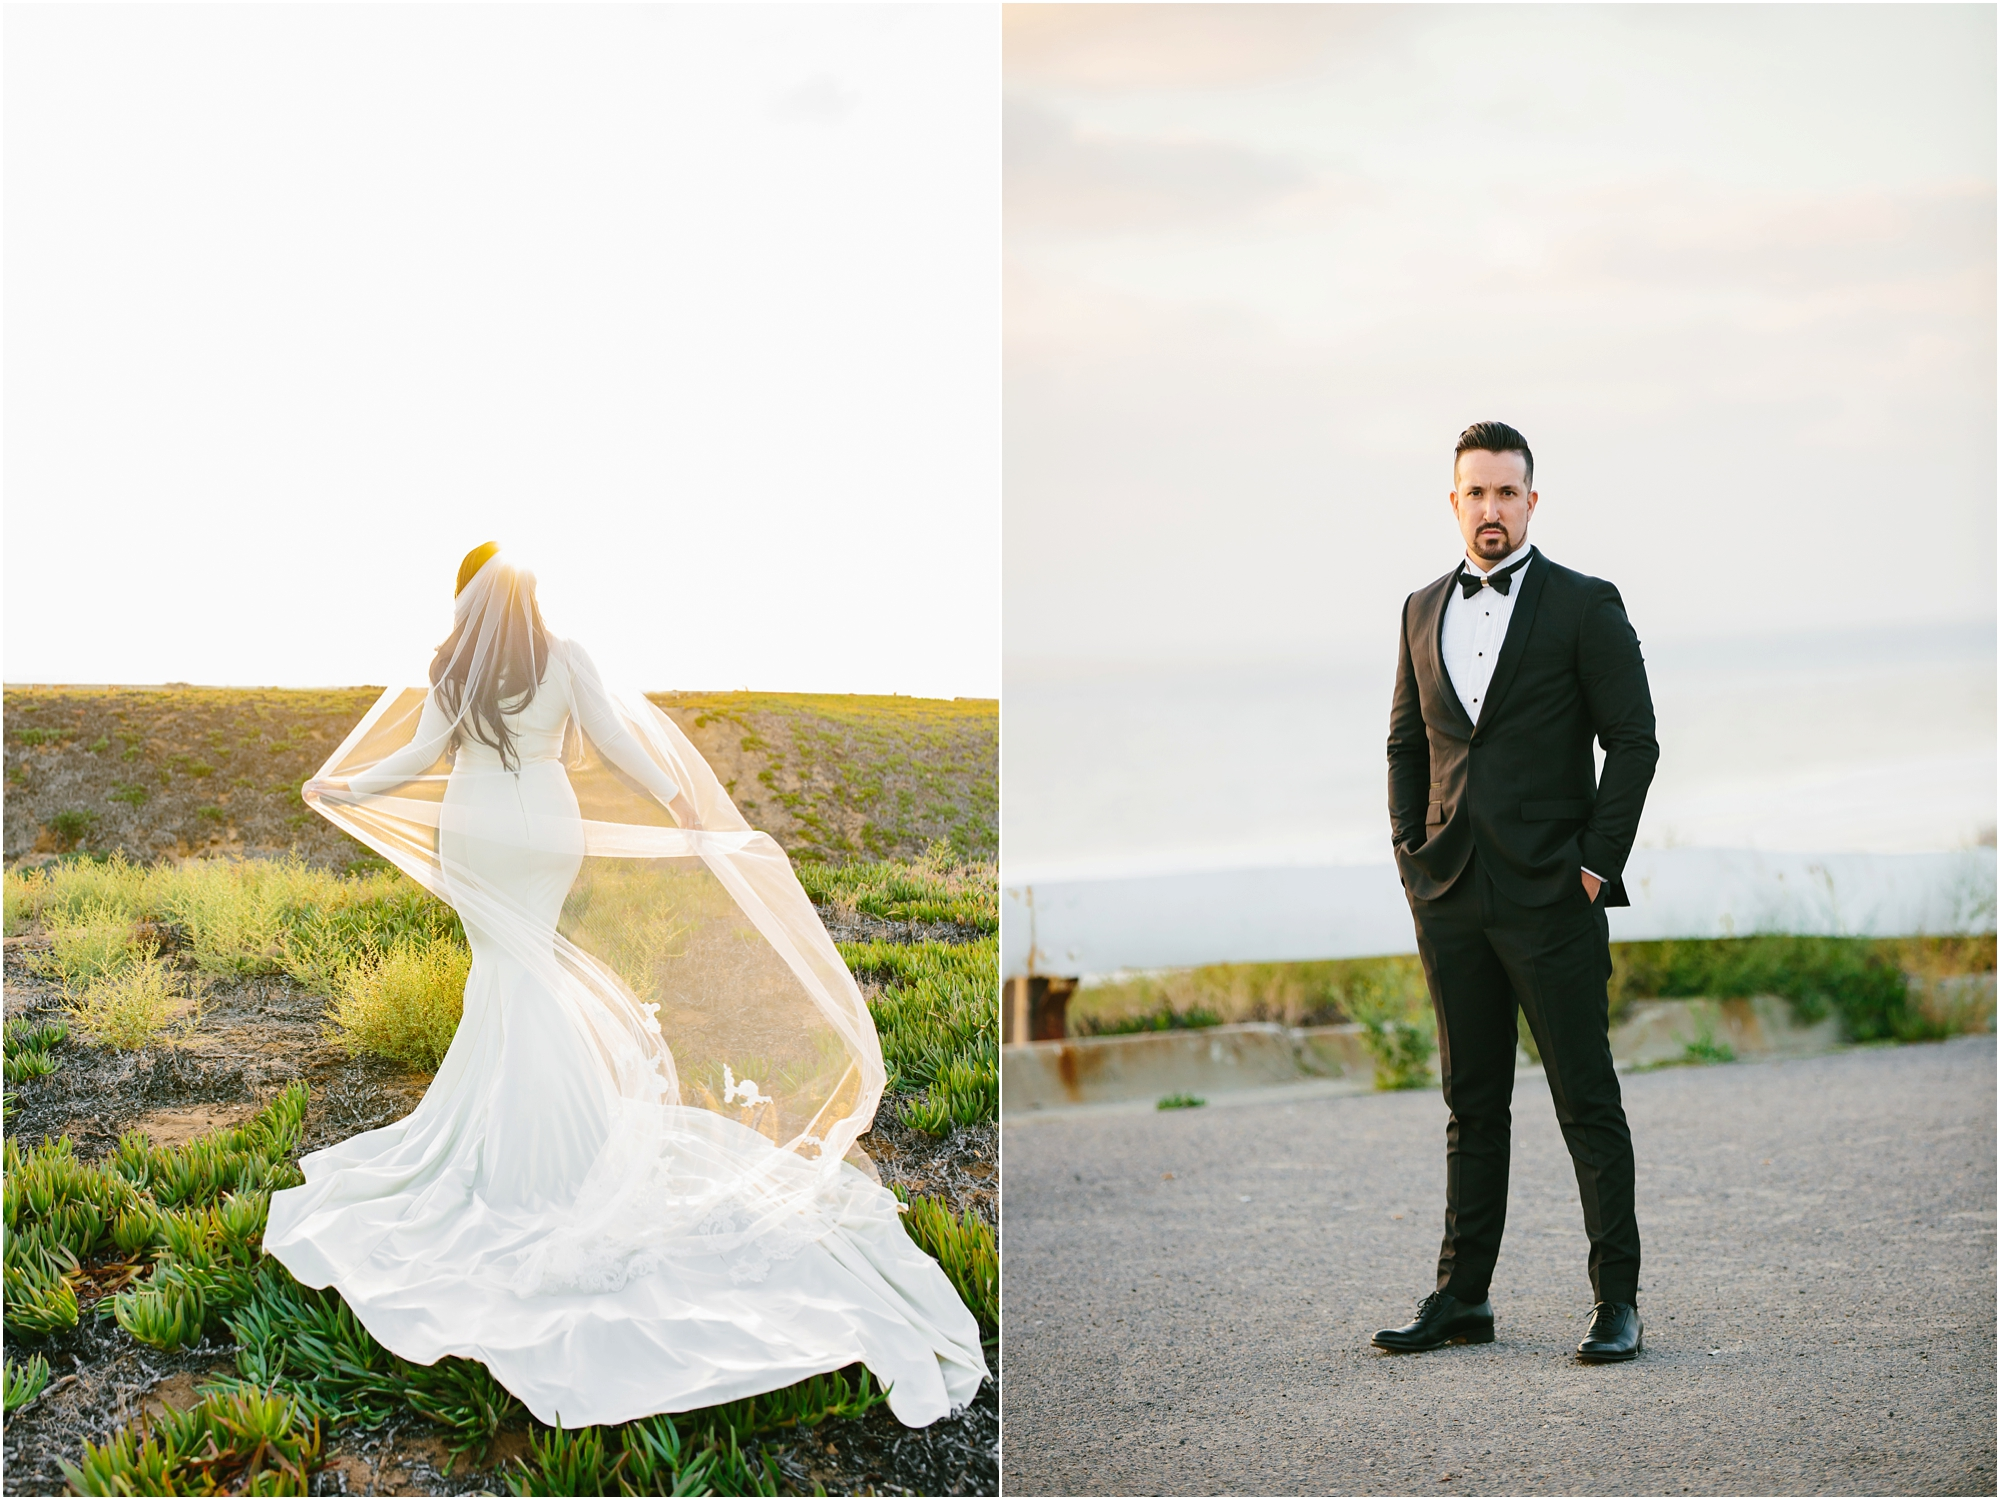 So Cal Bride and Groom - http://brittneyhannonphotography.com